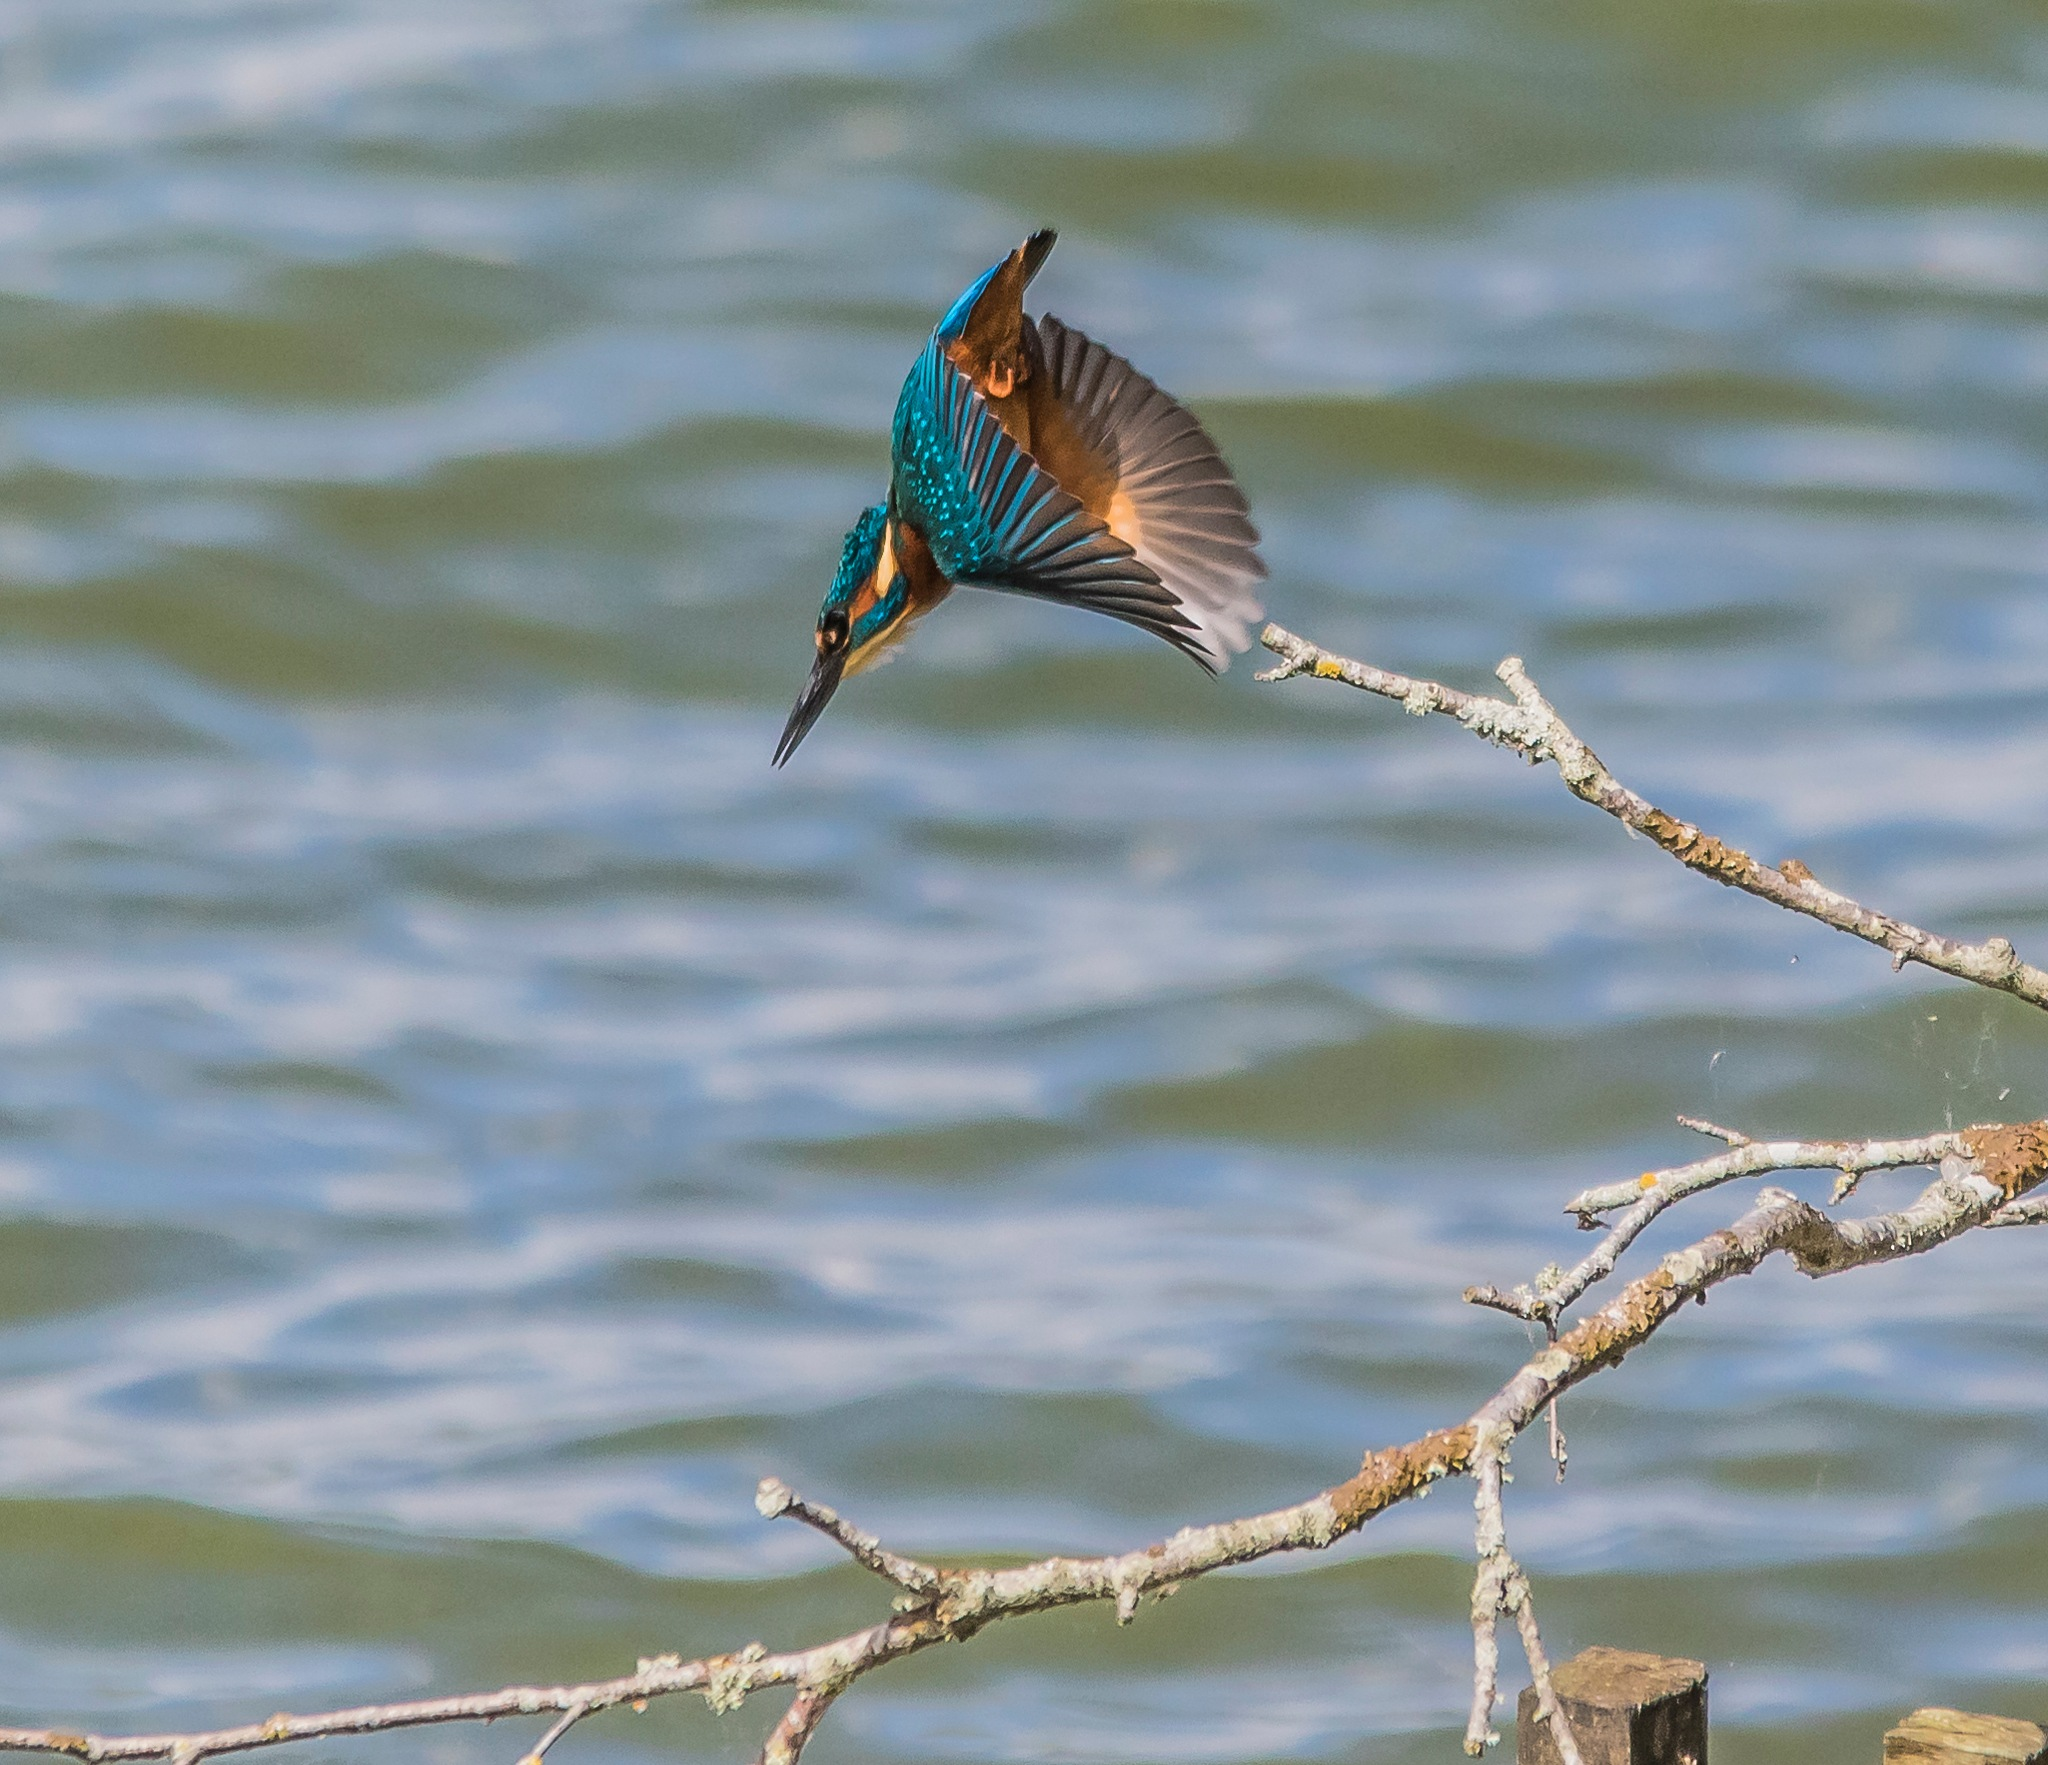 Kingfisher by Greg Edgings